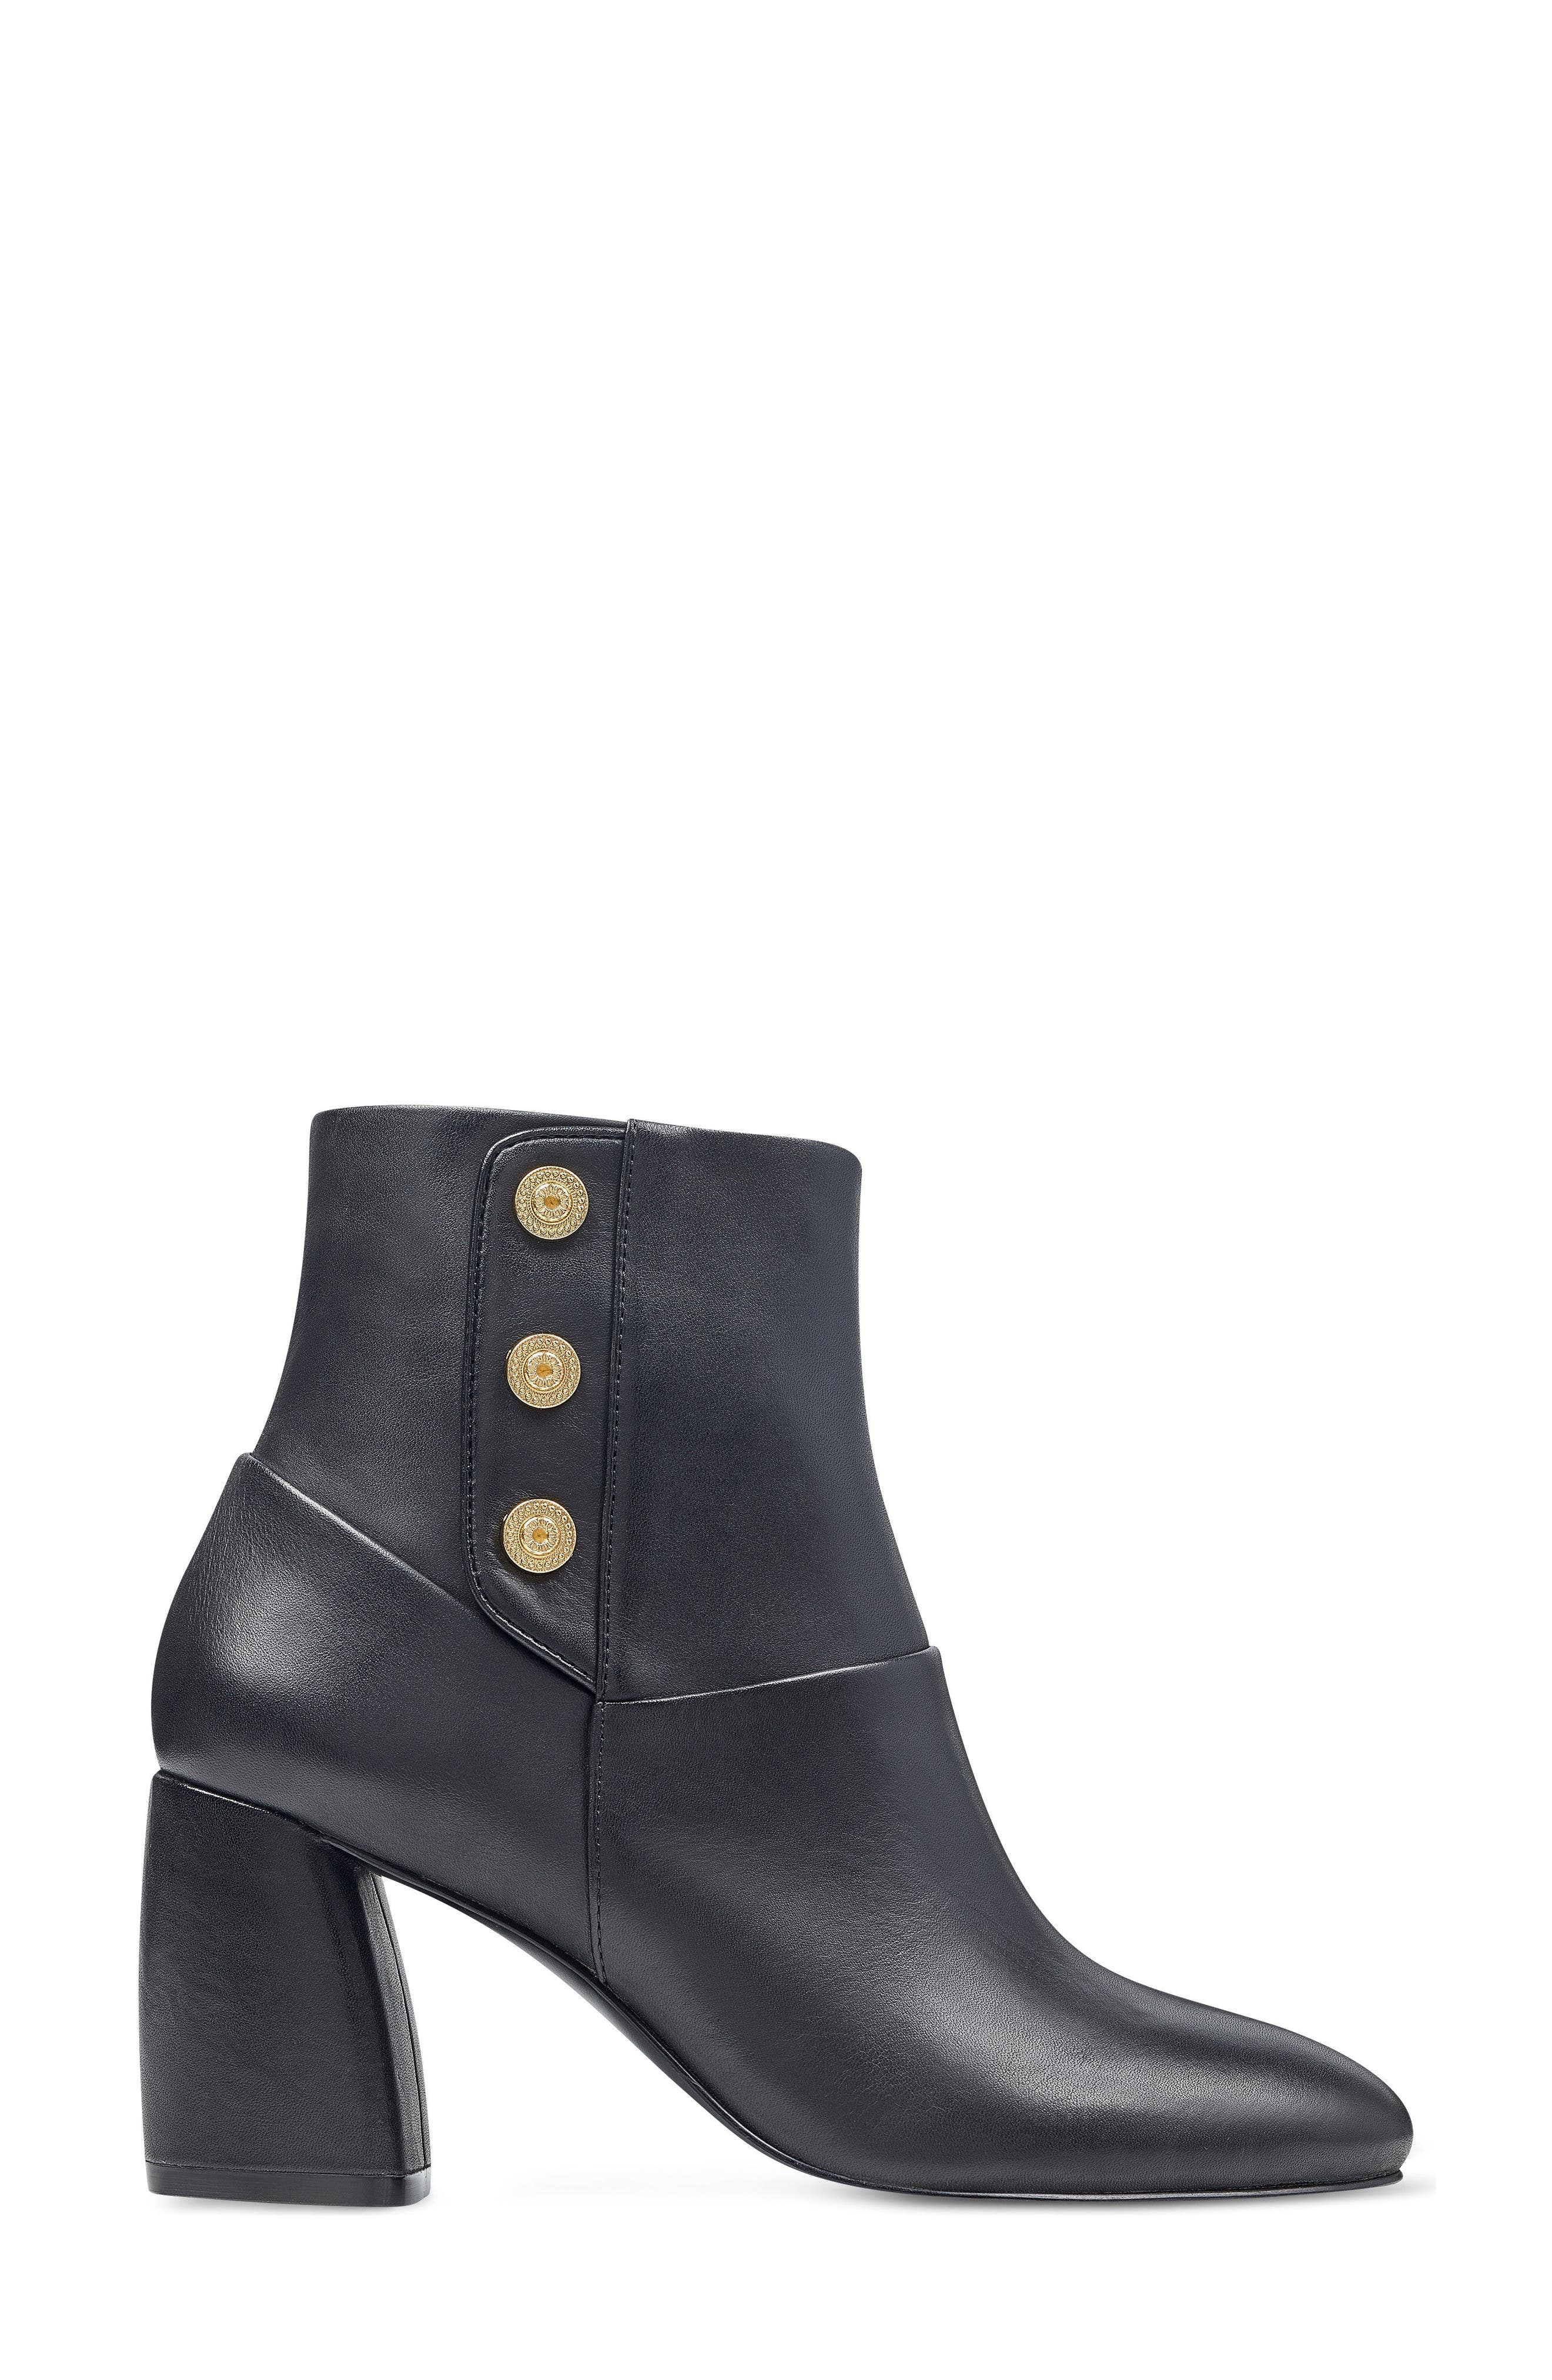 Kirtley Bootie,                             Alternate thumbnail 3, color,                             Black Leather